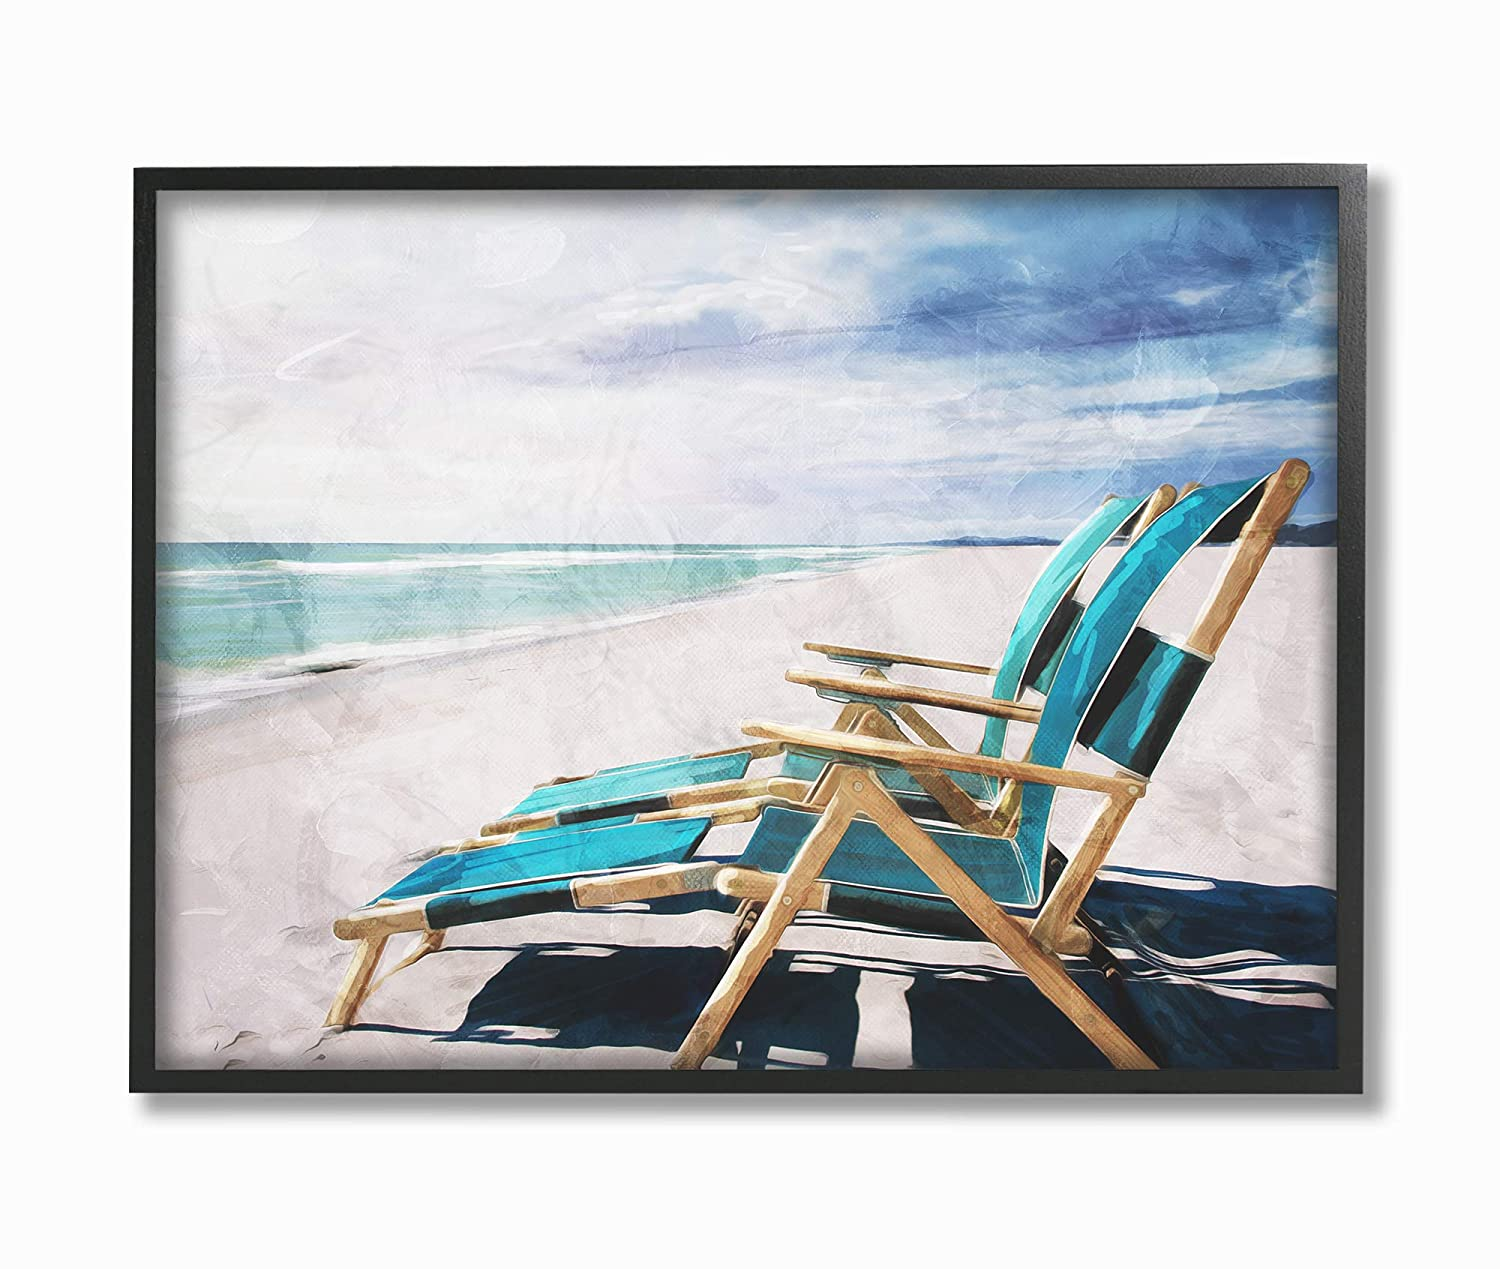 Multi-Color 13 x 19 The Stupell Home Decor Set of Teal Blue Chairs on The Beach Wall Plaque Art